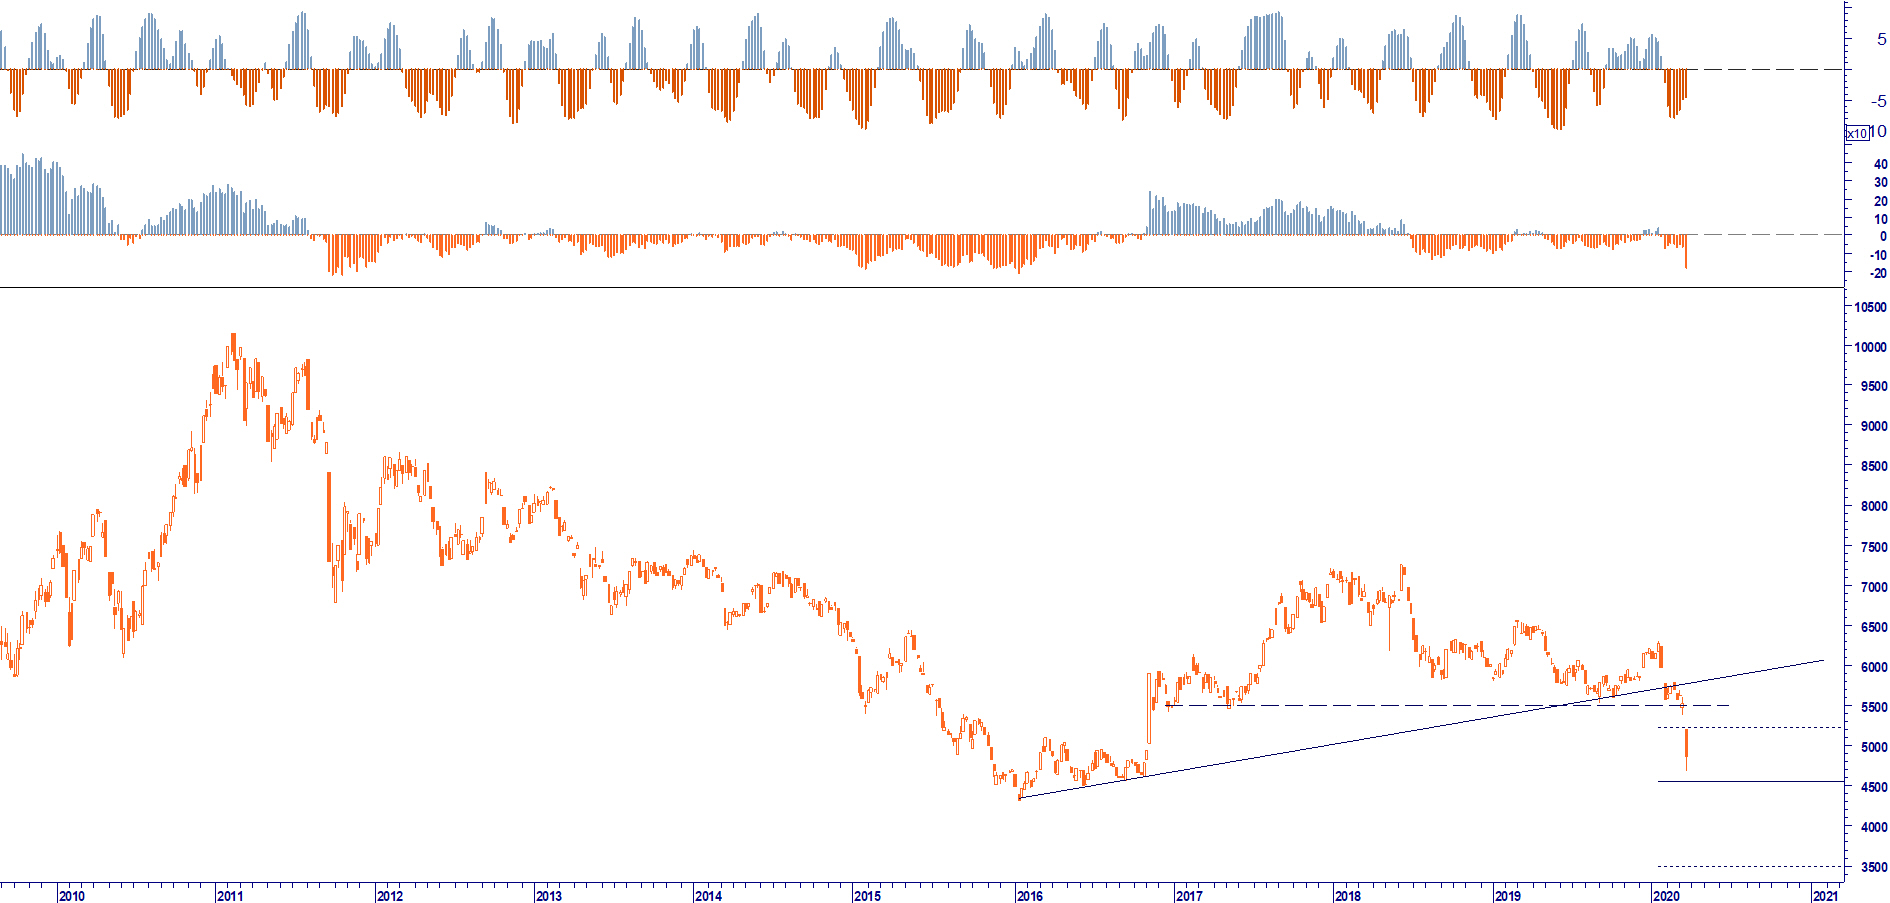 WB ANALYTICS: COPPER RAME DOWNTREND